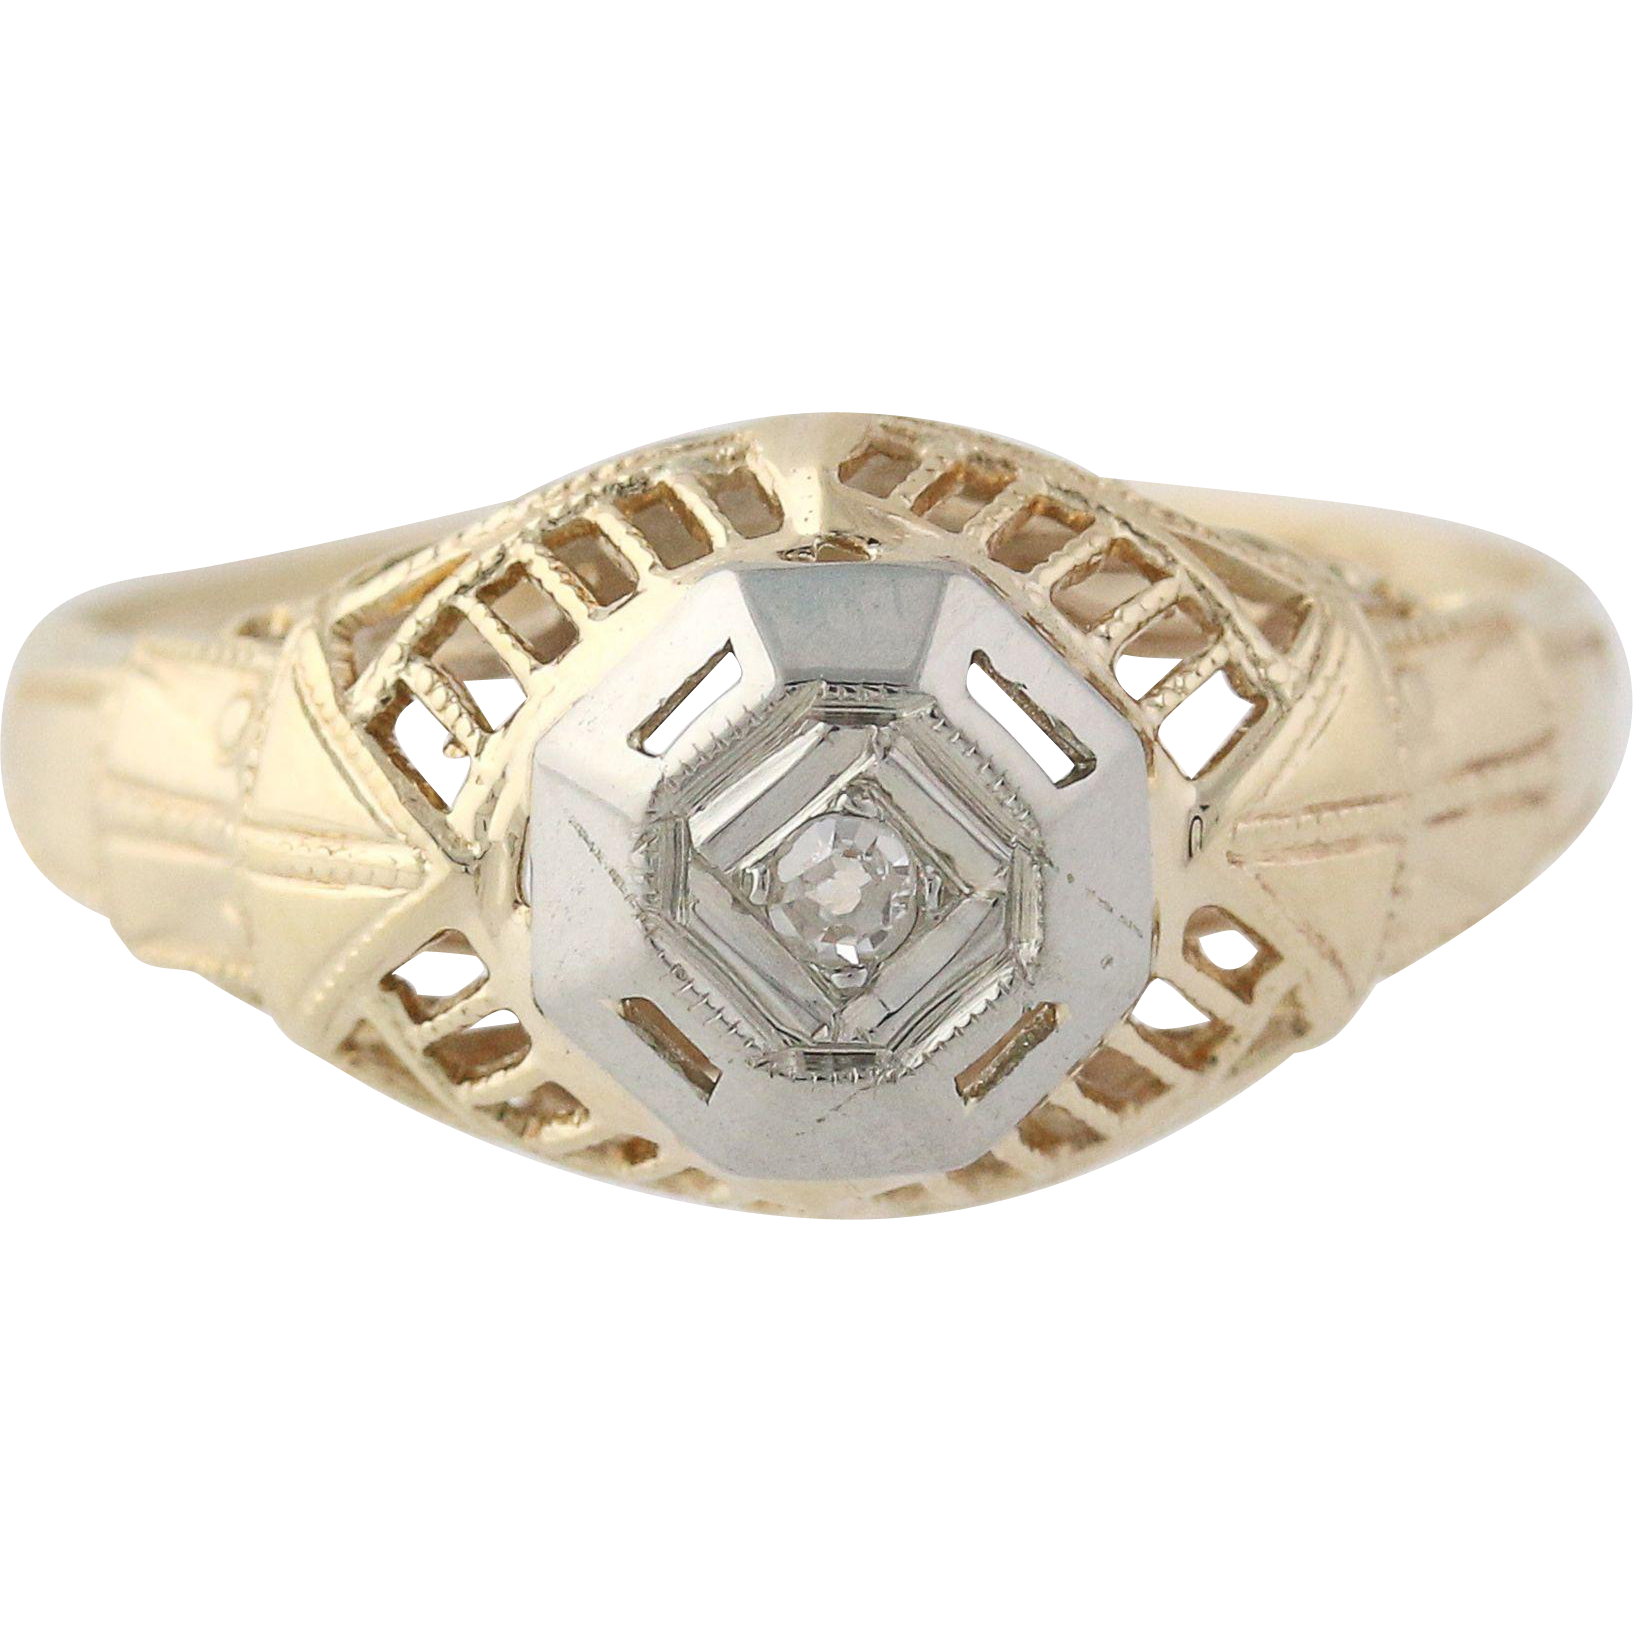 Art Deco Diamond Ring 10k Yellow White Gold Filigree Women's Solitaire 1920s-30s